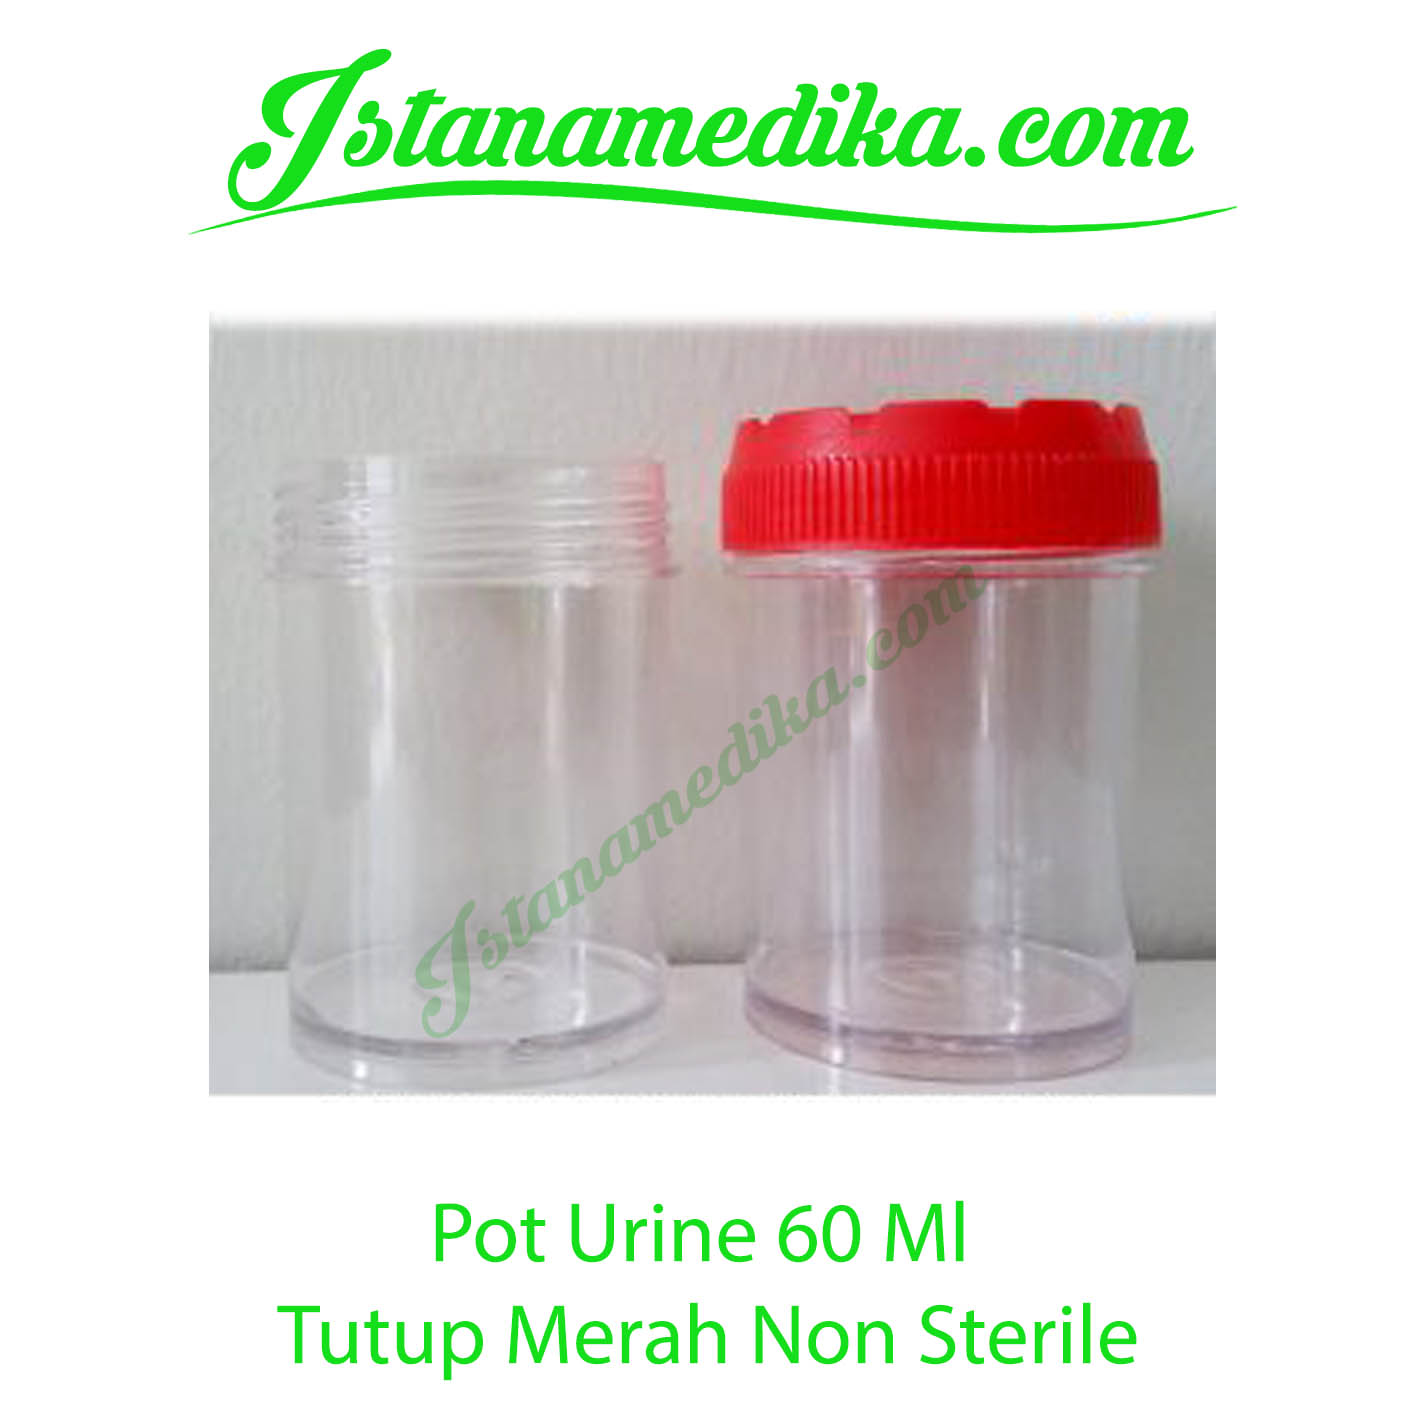 Pot Urine 60 Ml Tutup Merah Non Sterile Murah, Jual Pot Urine 60 Ml Tutup Merah Non Sterile Murah, Harga Pot Urine 60 Ml Tutup Merah Non Sterile, Gambar Pot Urine 60 Ml Tutup Merah Non Sterile Murah, Harga Grosir Pot Urine 60 Ml Tutup Merah Non Sterile, Toko Jual Pot Urine 60 Ml Tutup Merah Non Sterile Murah, Pot Urine Non Sterile 60ml Tutup Merah | Urine Container 60cc, Pot Urine Sterile 60 Ml Tutup Merah Labware , Agen Pot Urine 60 Ml Tutup Merah Non Sterile, Supplier Pot Urine 60 Ml Tutup Merah Non Sterile Ciputat, Grosir Pot Urine 60 Ml Tutup Merah Non Sterile Semarang, Distributor Pot Urine Sterile Dan Non Sterile Pabrik Pot Urine Di Jakarta Produksi Pot Urine, Distributor Pot Urine Sterile 60 Ml Paling Murah, Pot Urine Murah, Jual Pot Urine Murah, Pot Urine Pharmacie, Daftar Harga Pot Urine Non Sterile, Jual Pot Urine Container All Size, Distributor Pot Urine Sterile Murah, Distributor Pot Urine Sterile/Non Sterile Harga Pot Urine, Jual Pot Urine Murah, Harga Pot Urine Steril, Daftar Harga Pot Urine, Grosir Pot Urine, Pabrik Pot Urine, Distributor Pot Urine, Harga Grosir Pot Urine, Jual Pot Salep Murah, Jenis Pot Sputum Steril, Distributor Pot Urine, Grosir Pot Urine, Harga Grosir Pot Urine, Pabrik Pot Urine, Daftar Harga Pot Urine, Pot Urine Non Sterile 10,20,30,50,75,100,200 Cc/Ml , Jual Pot Urine Non Steril Murah, Distributor Pot Urine Sterile Dan Non Sterile Murah Grosir Jakarta Tangerang, Pabrik Pot Urine | Urine Container Tangerang, Menjual Steril Container ( Pot Urine Steril Dan Non Steril ).